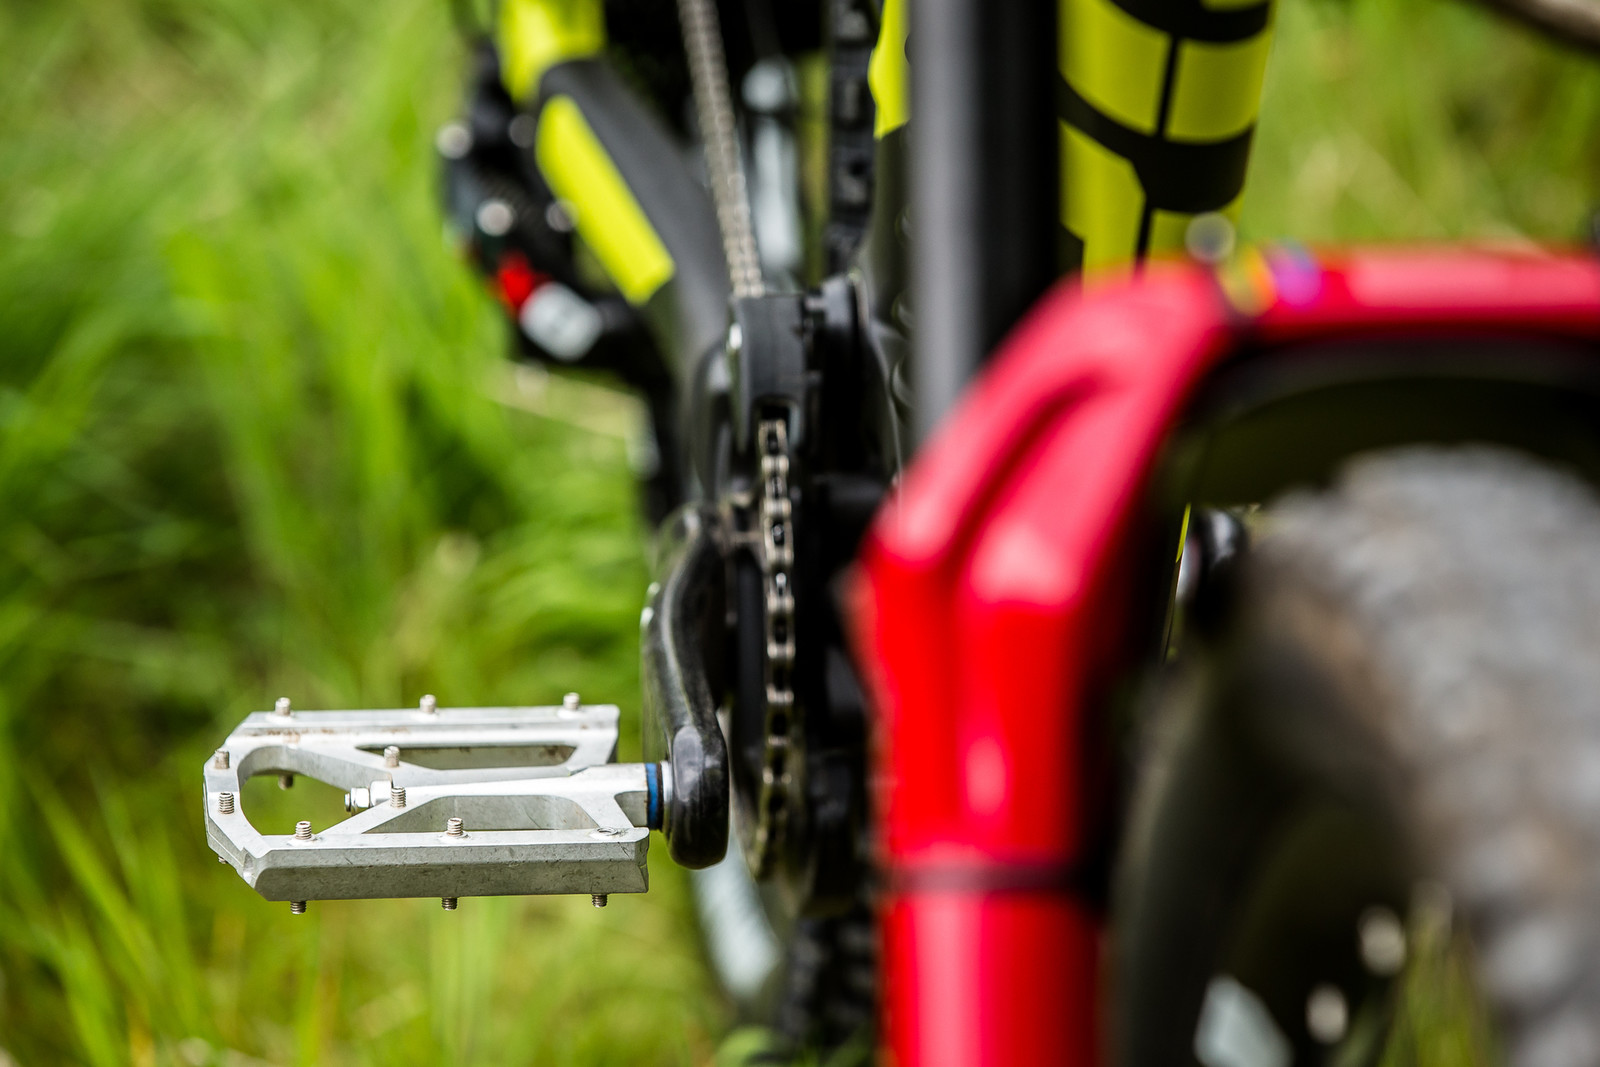 HT Flat Pedals - Connor Fearon's Kona Supreme Operator for Fort William - Mountain Biking Pictures - Vital MTB